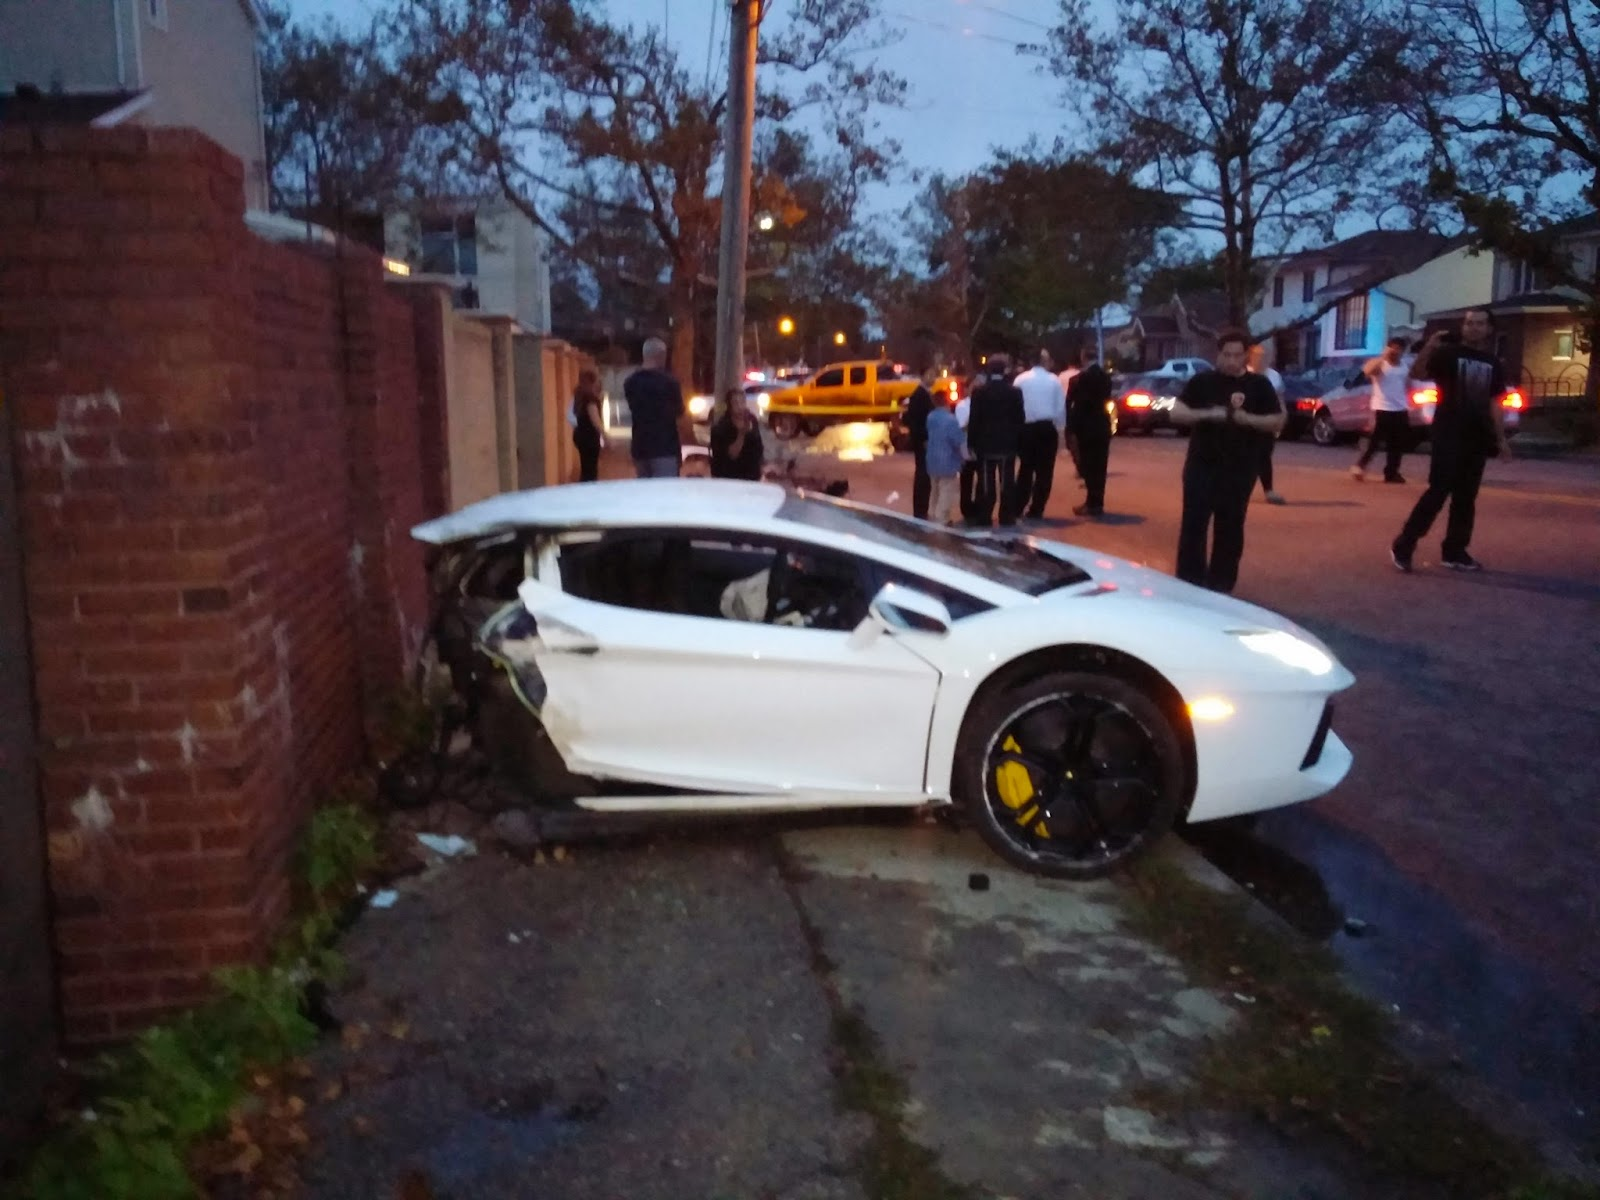 Teen Celebrity News Justin Bieber Crashes Lambo In Los Angeles